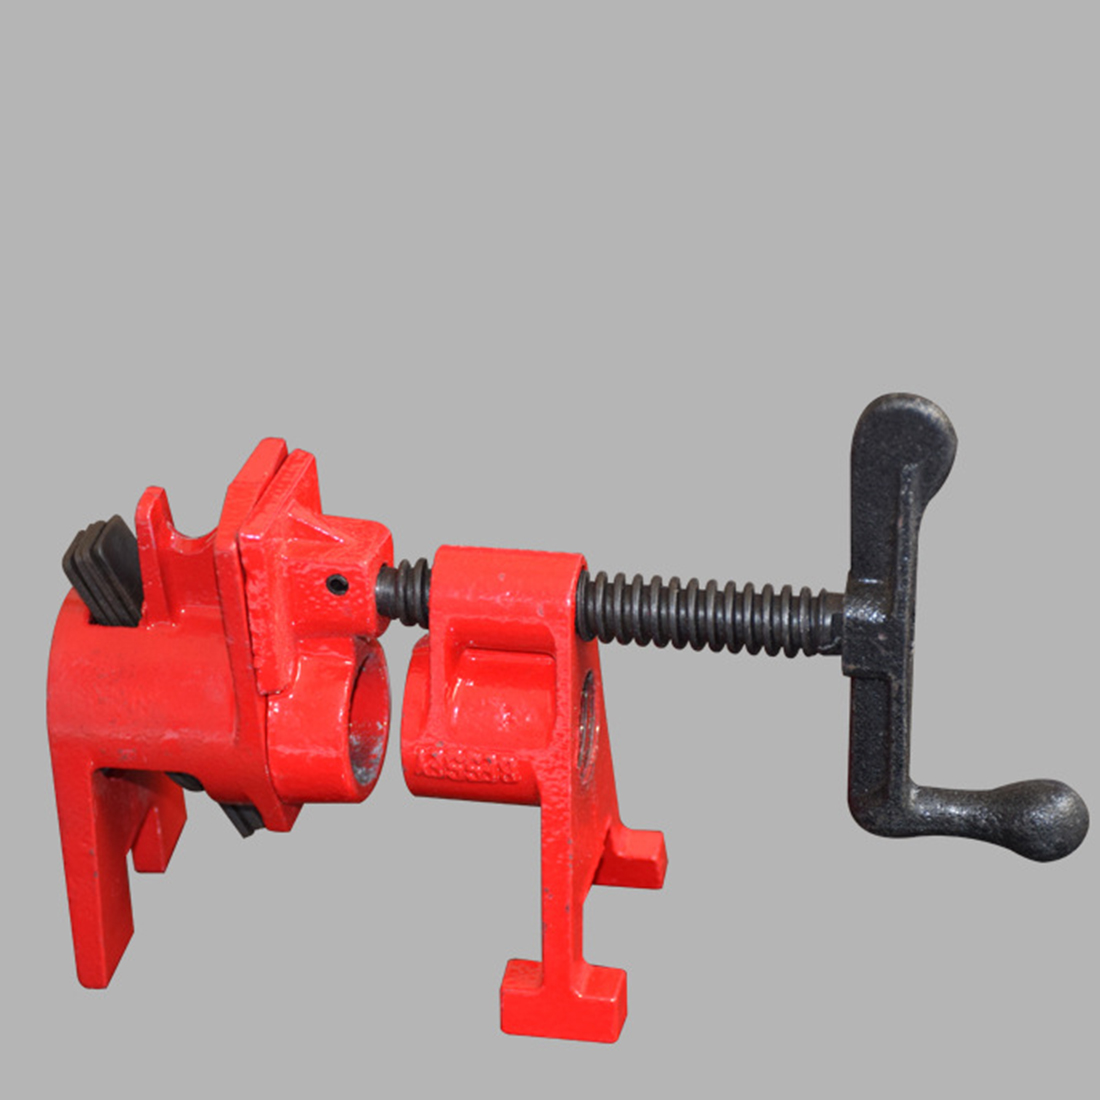 3/4 inch Pipe Clamp 3/4 1/2 inch Heavy Duty Pipe Clamp Woodworking Wood Gluing Pipe Clamp for Fixture Carpenter Woodworking Tool 1 2 3 inch g type woodworking clamp clamping device adjustable diy carpentry gadgets heavy duty g clamp